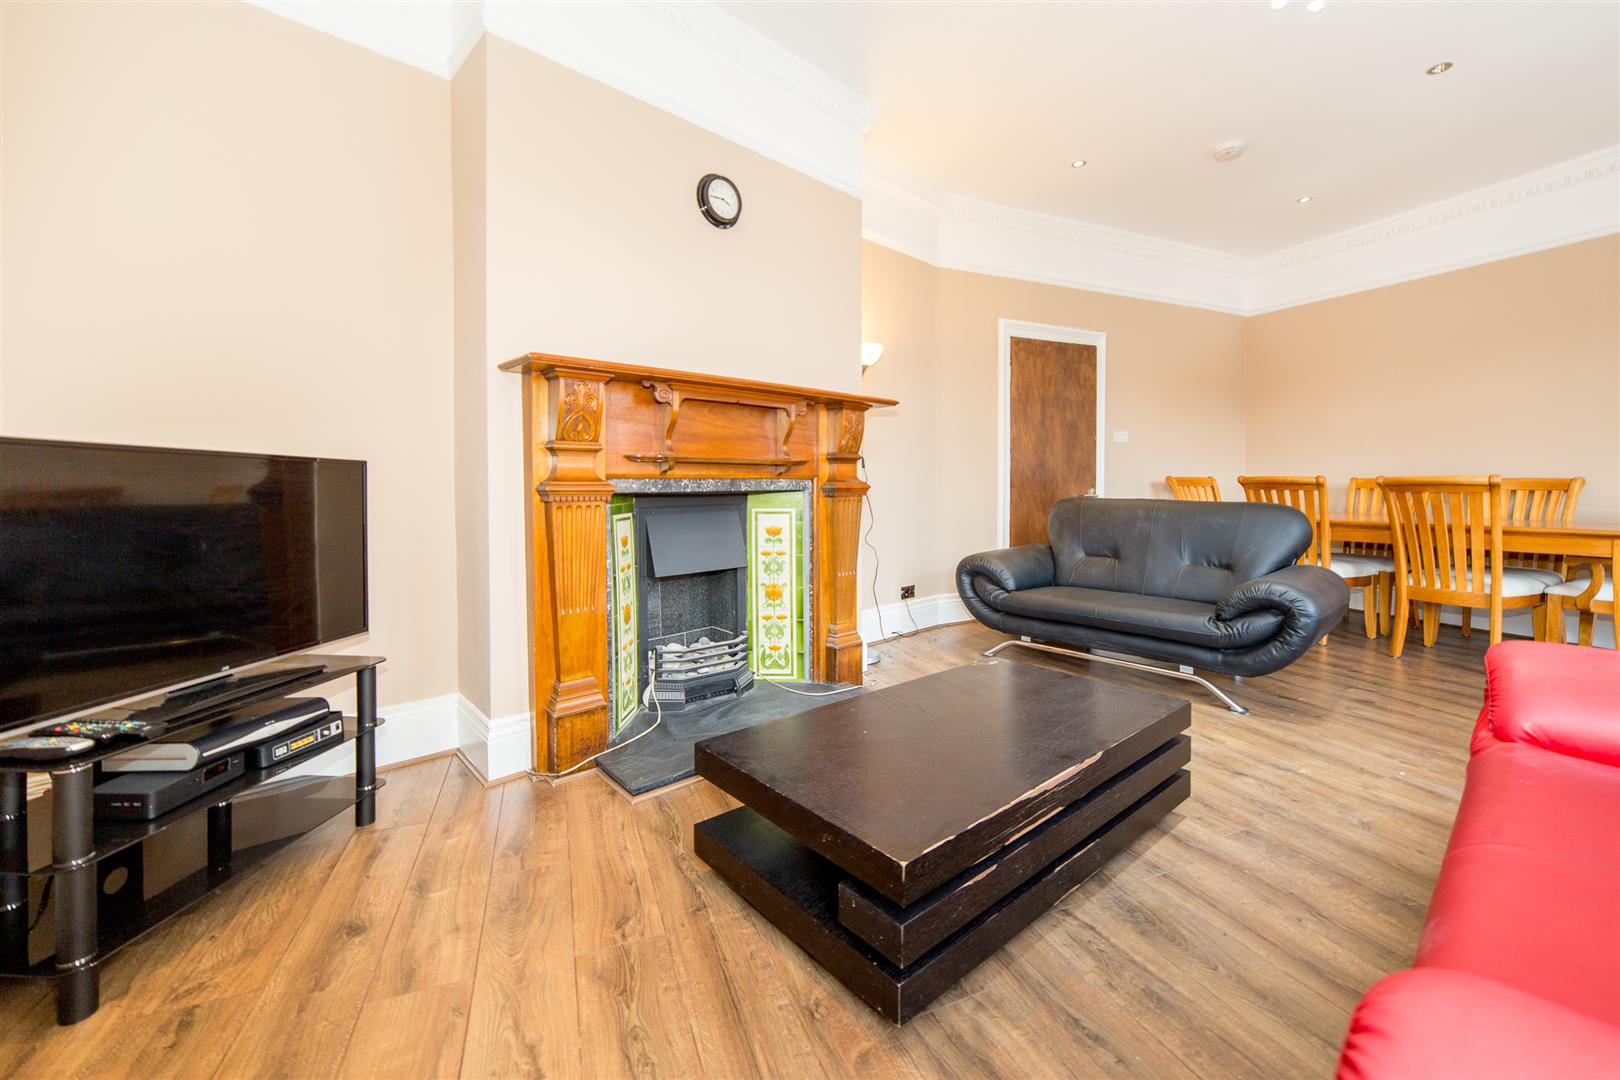 7 bed maisonette to rent in Newcastle Upon Tyne, NE2 1LB - Property Image 1